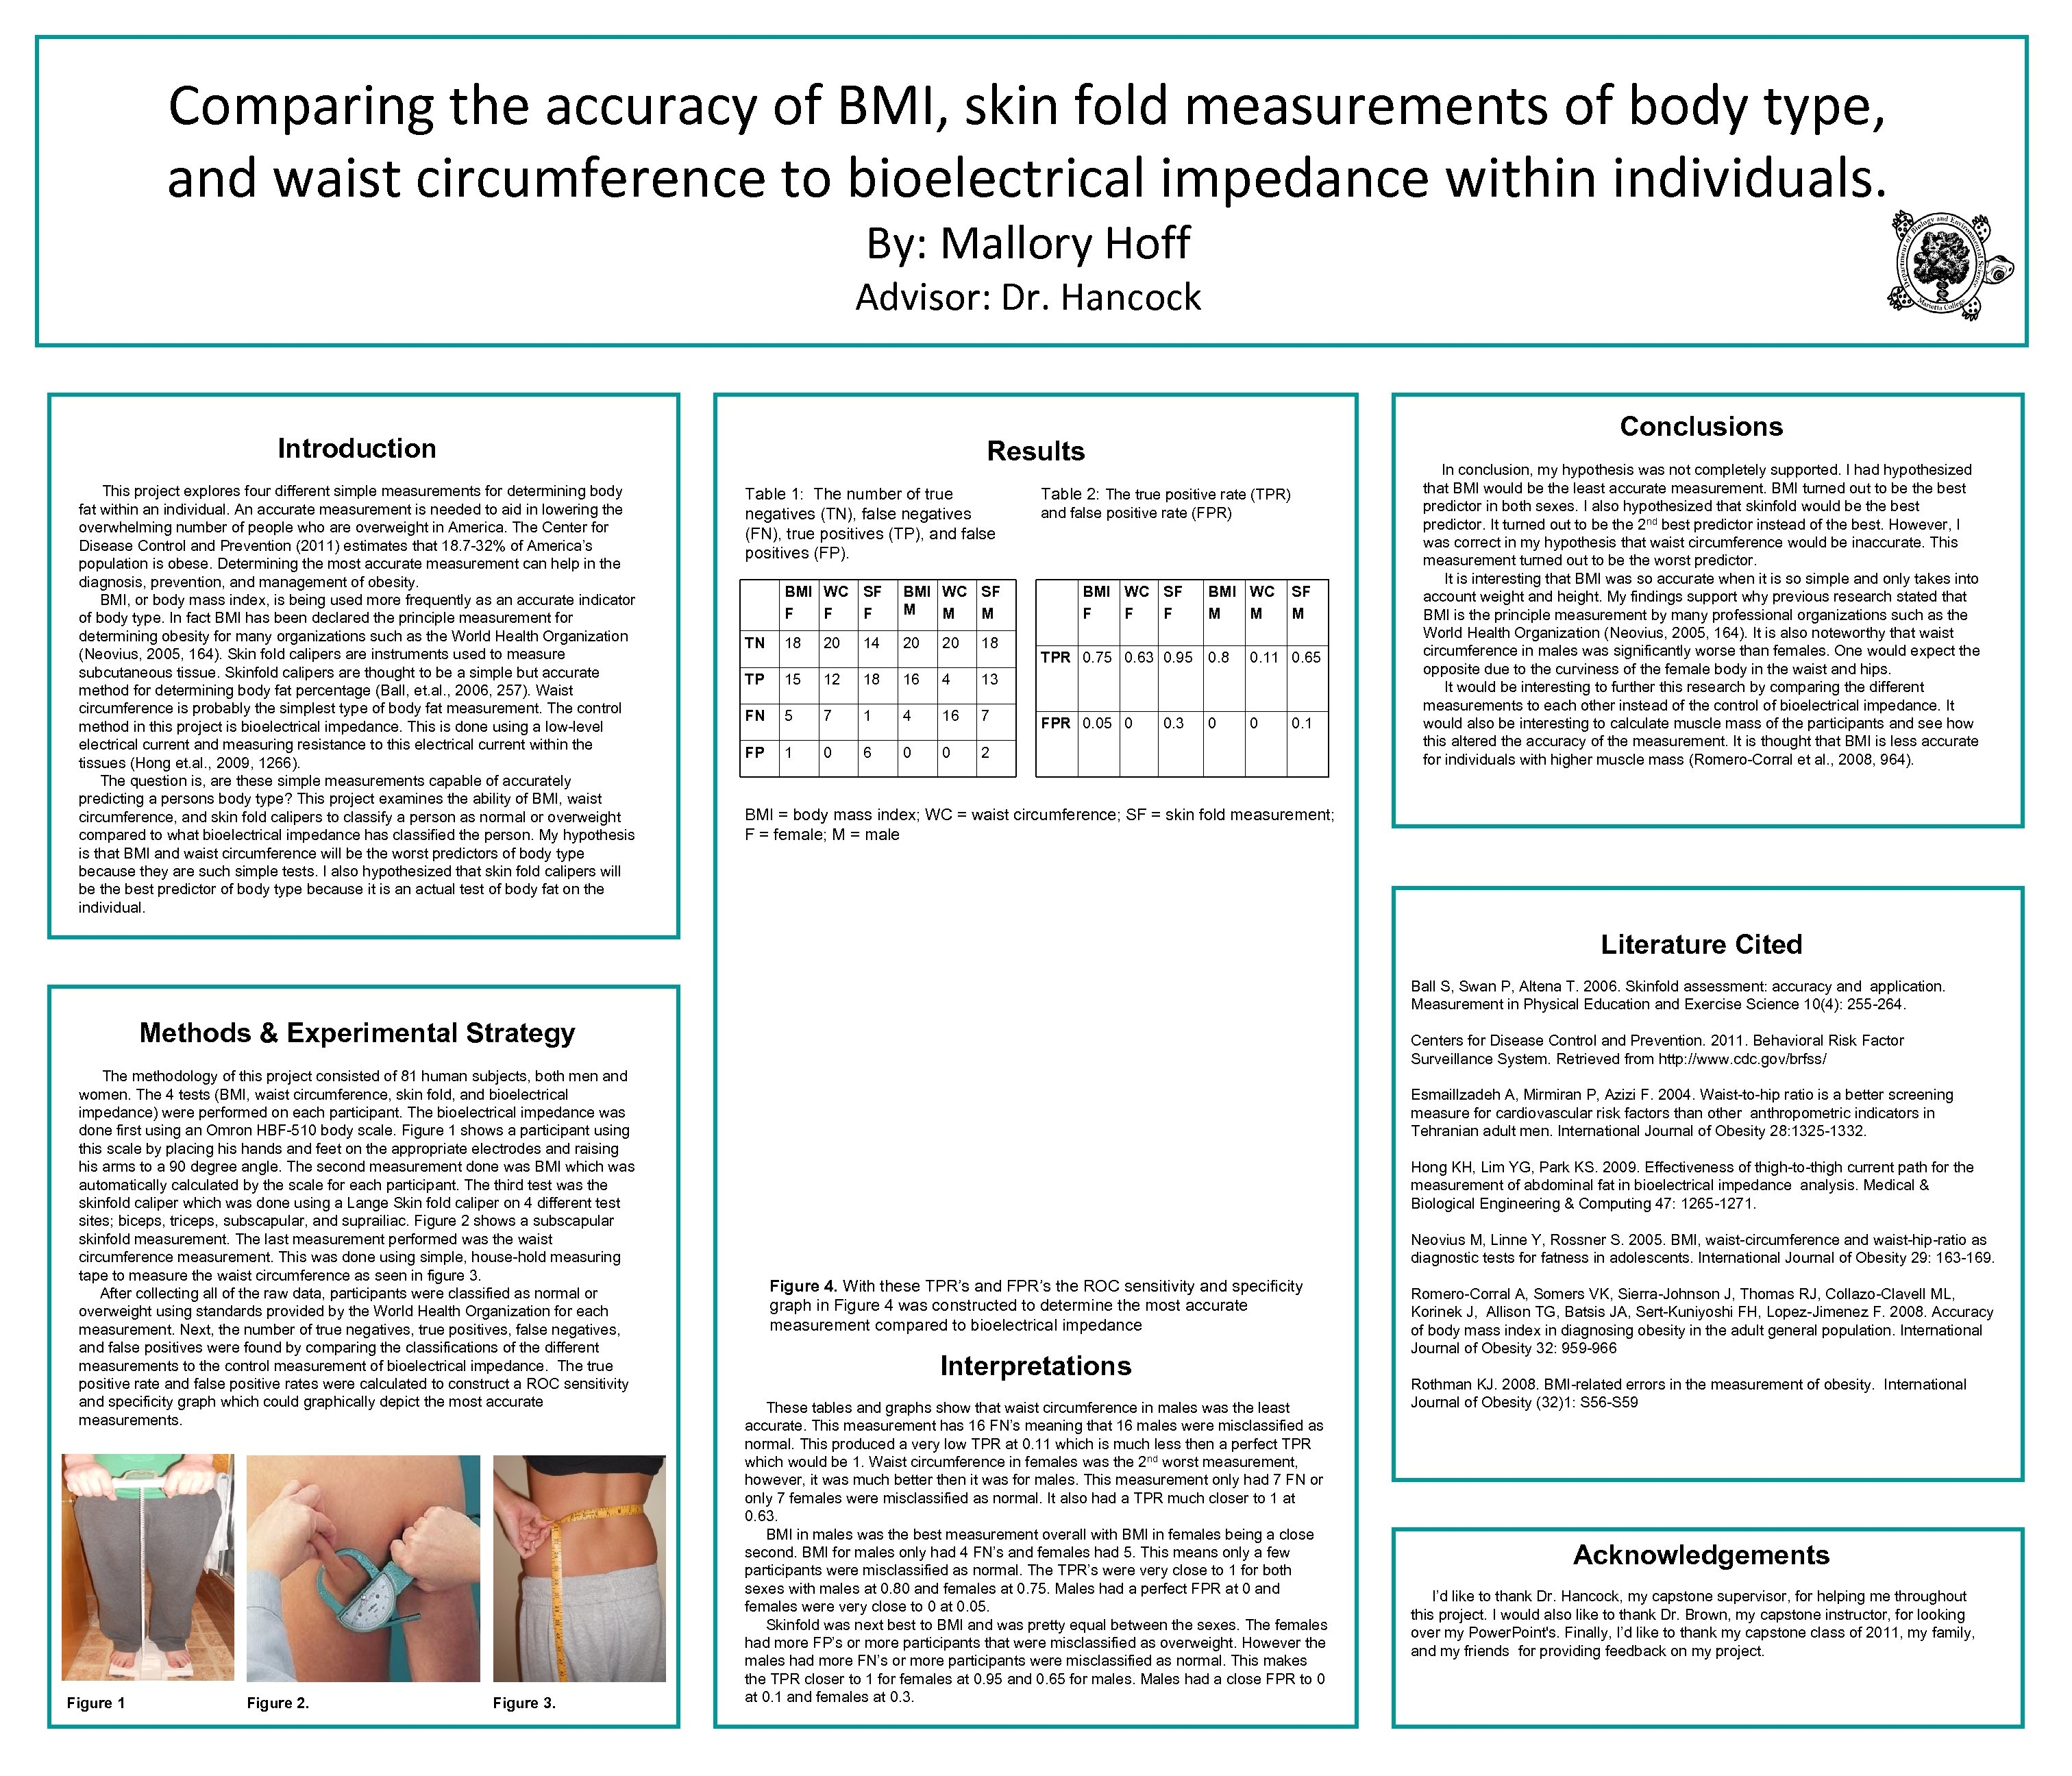 Comparing the accuracy of BMI, skin fold measurements of body type, and waist circumference